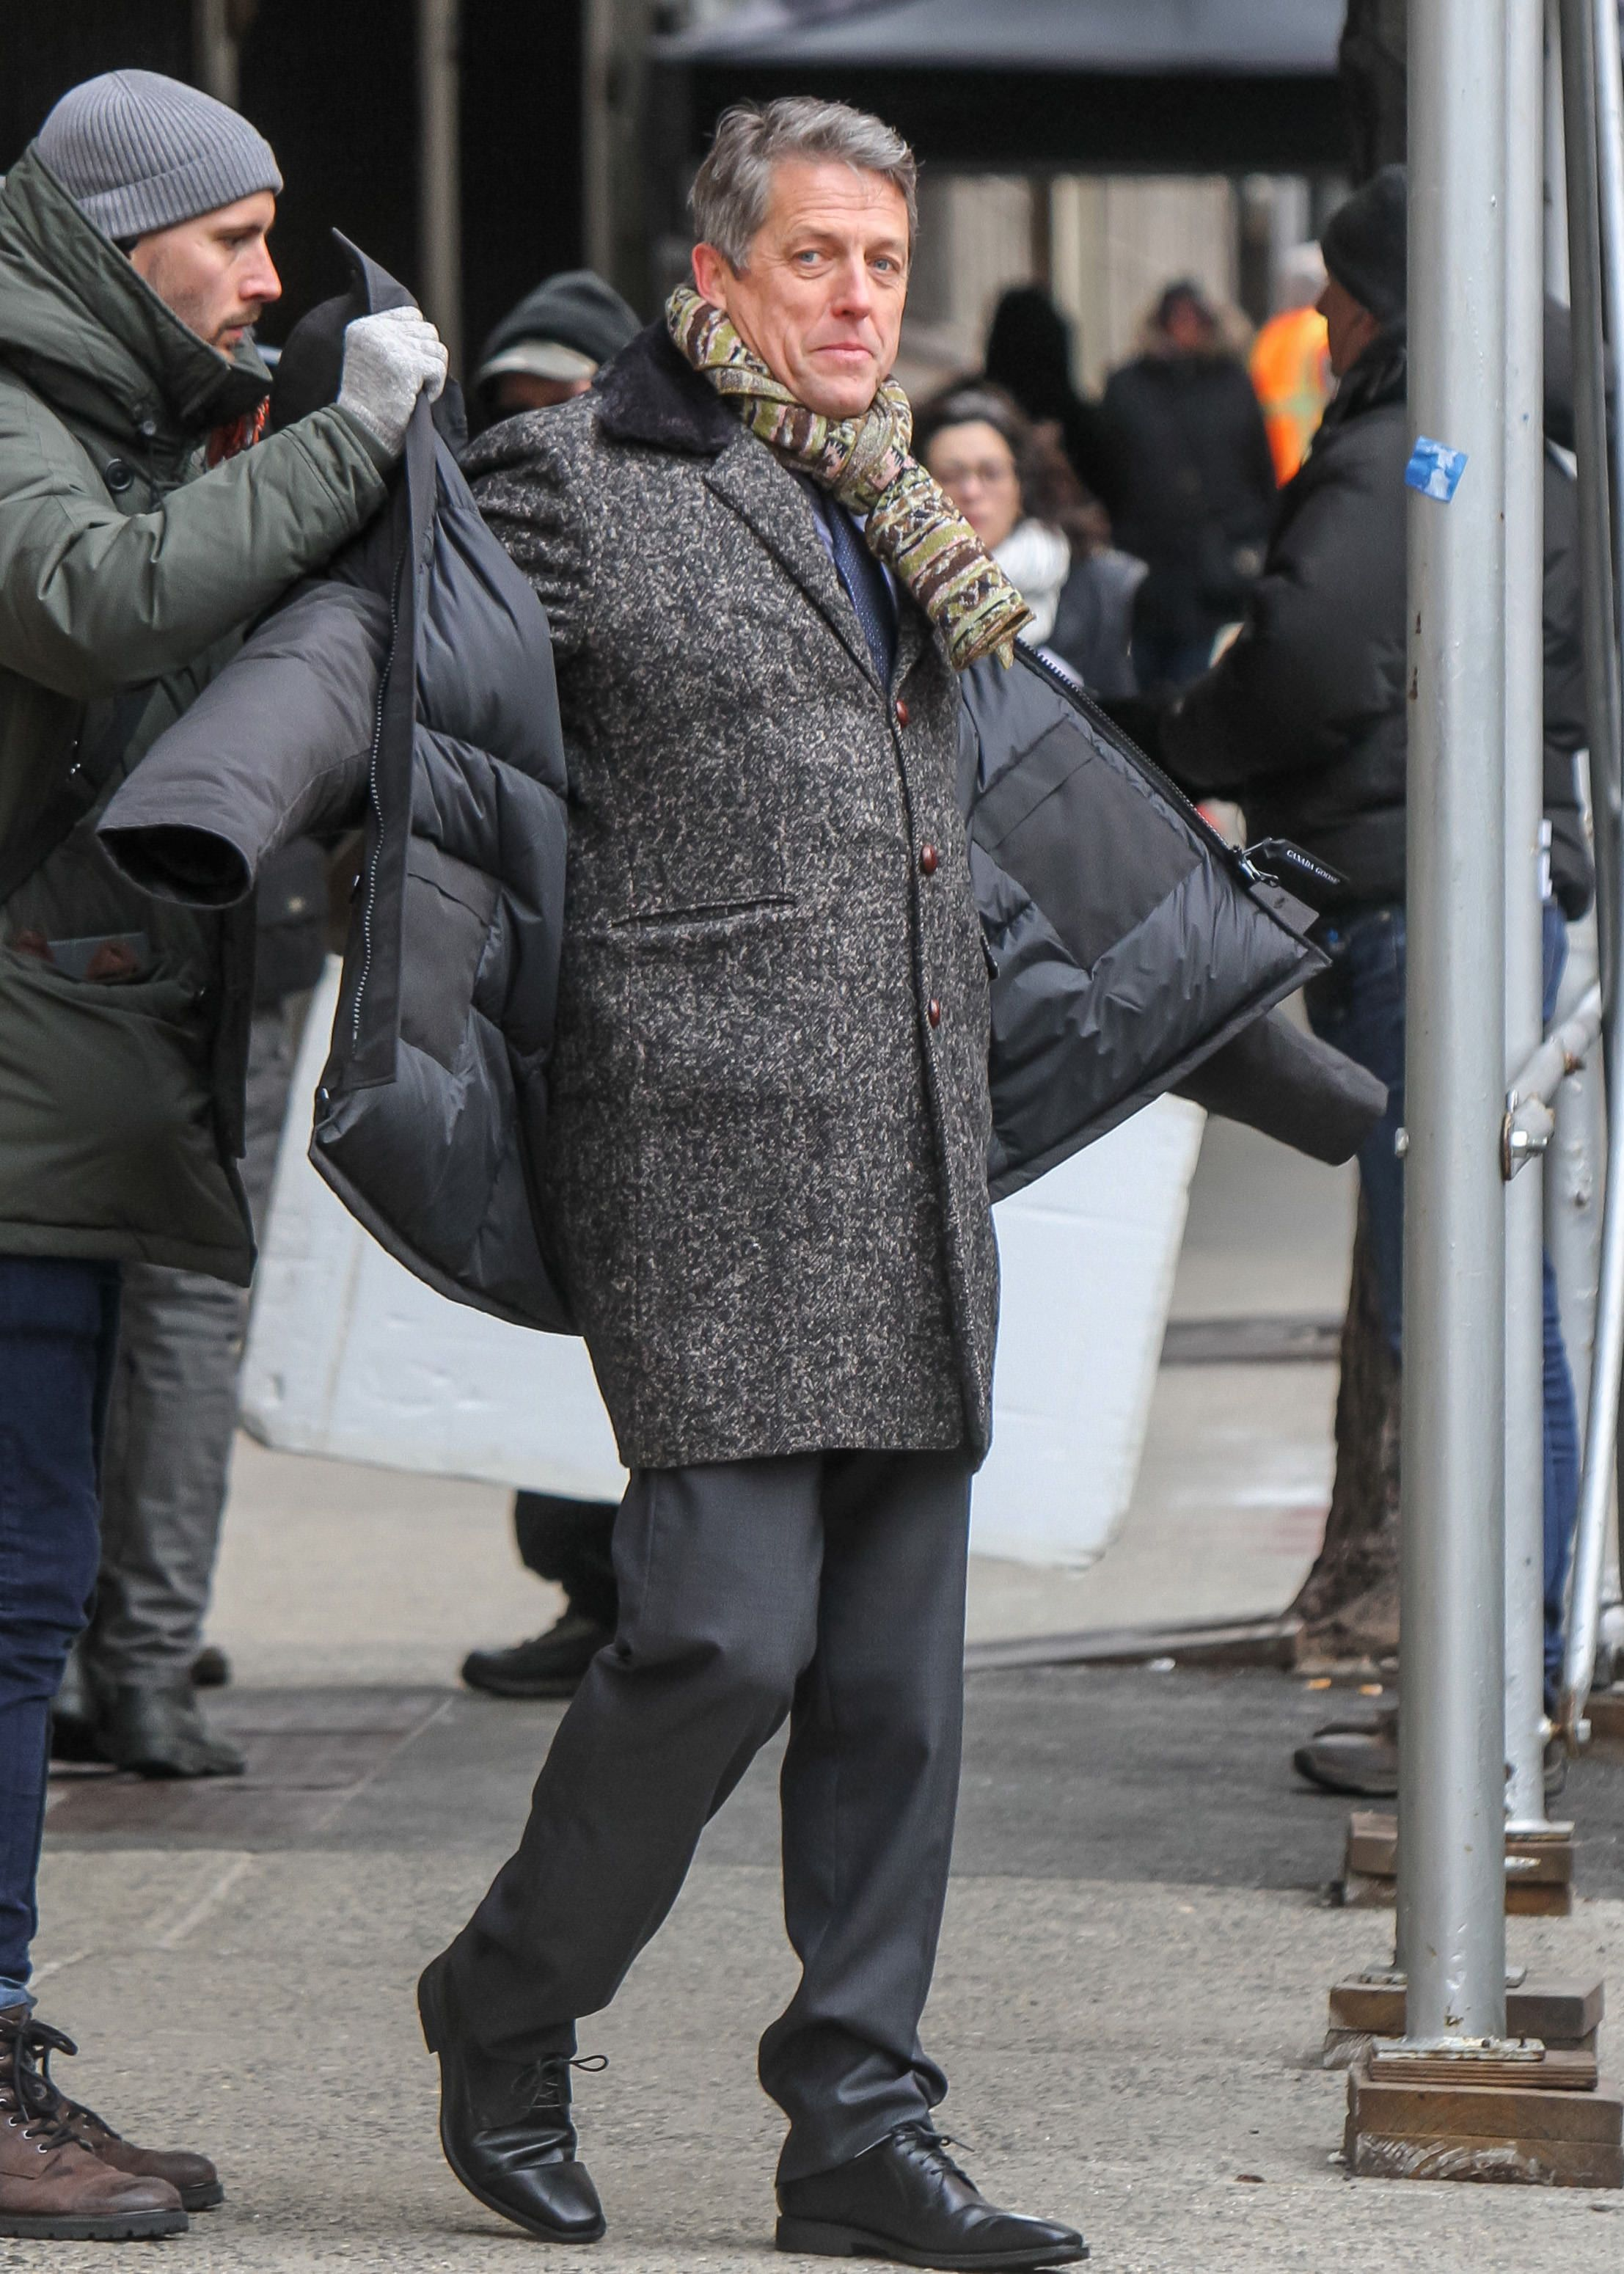 Hugh Grant- The Undoing-Celebrity Sightings In New York - March 08, 2019